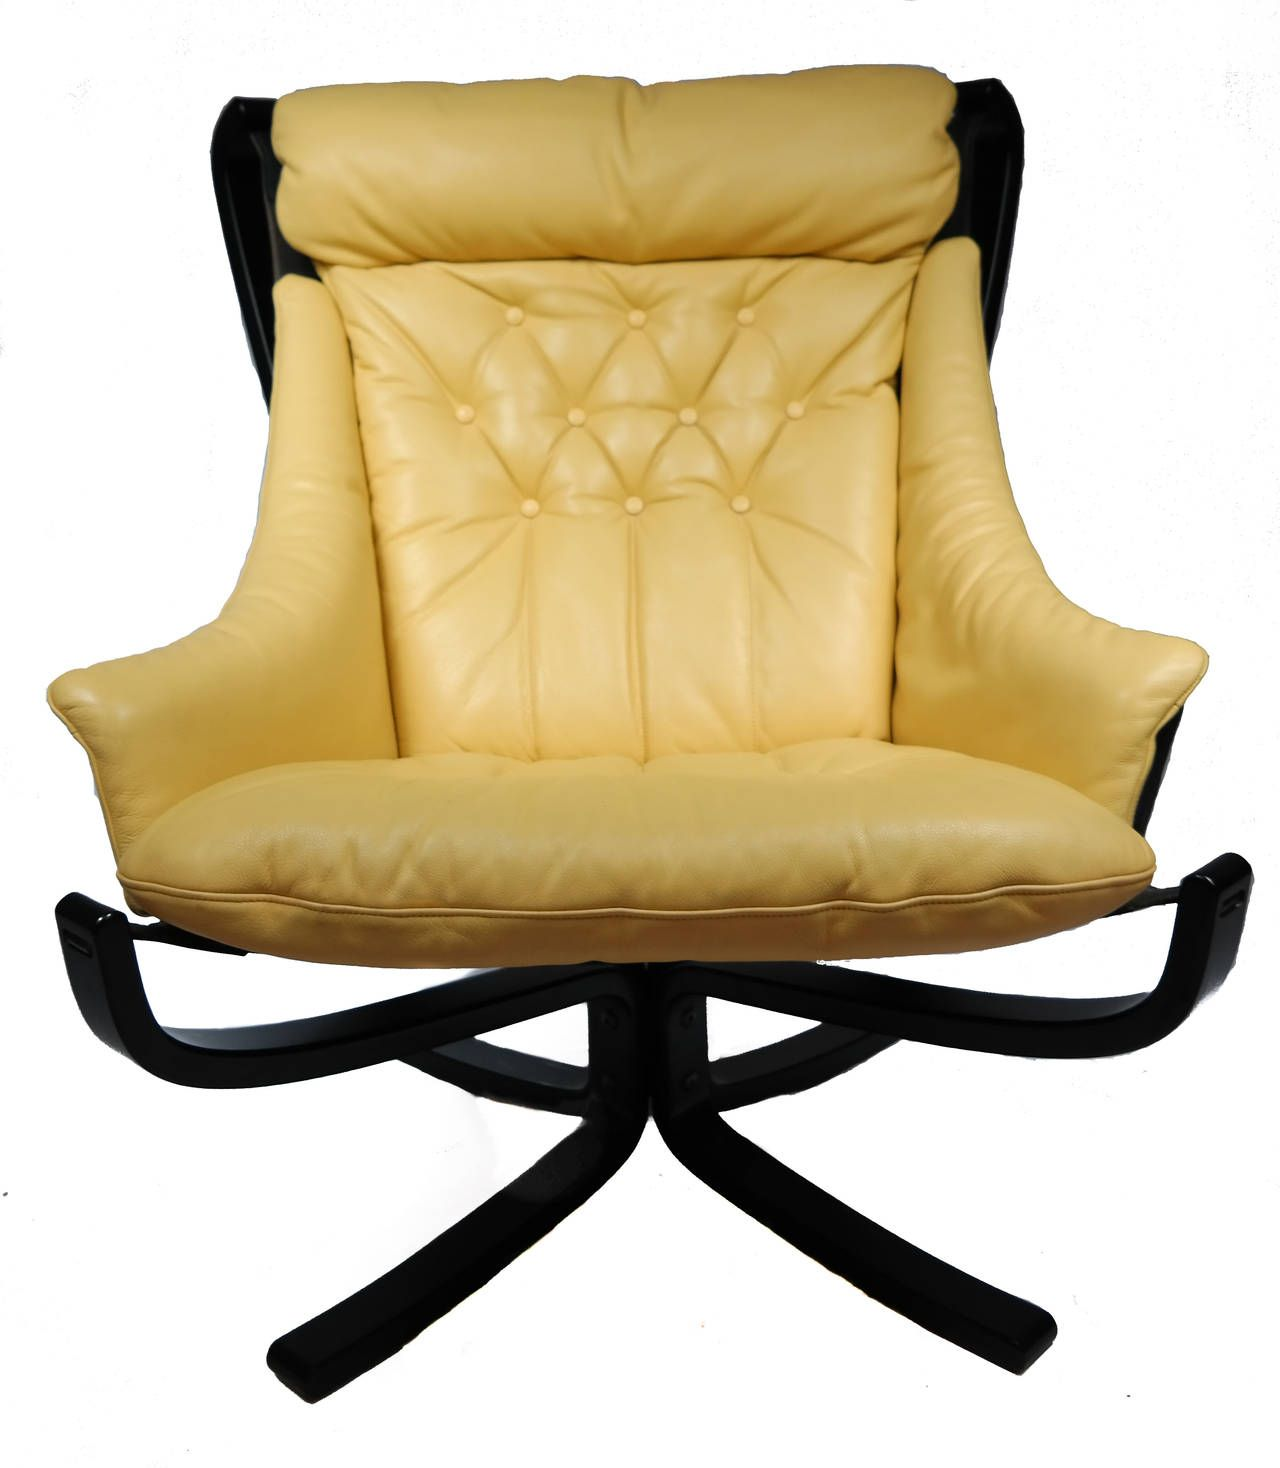 Diverting Sigurd Ressell Falcon Easy Chair Sigurd Ressell Falcon Easy Chair Lounge Seat Lounge Easy Chair Danish Easy Chair furniture Modern Easy Chair